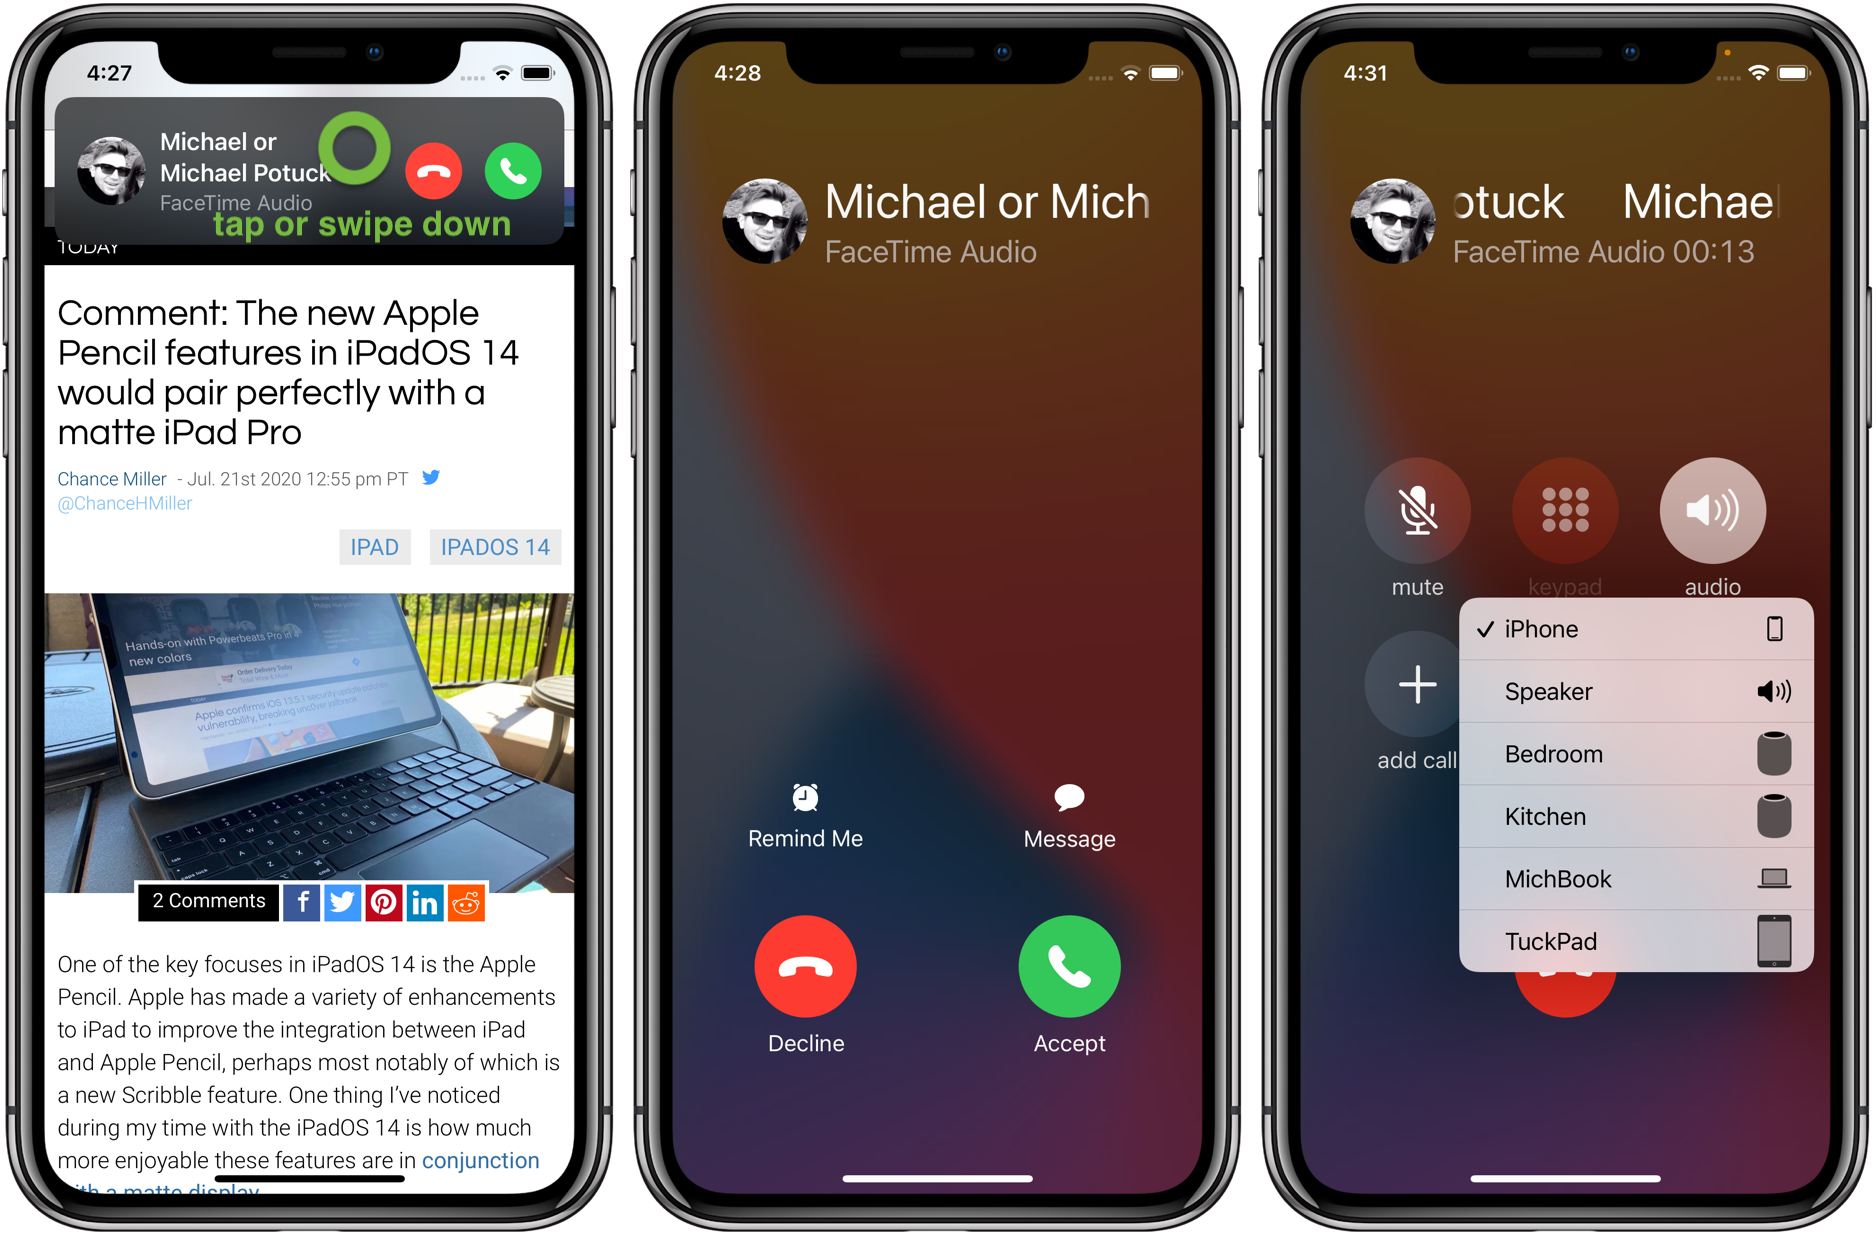 How to Use the Compact Calling Interface for iPhone iOS 14 Walkthrough 2